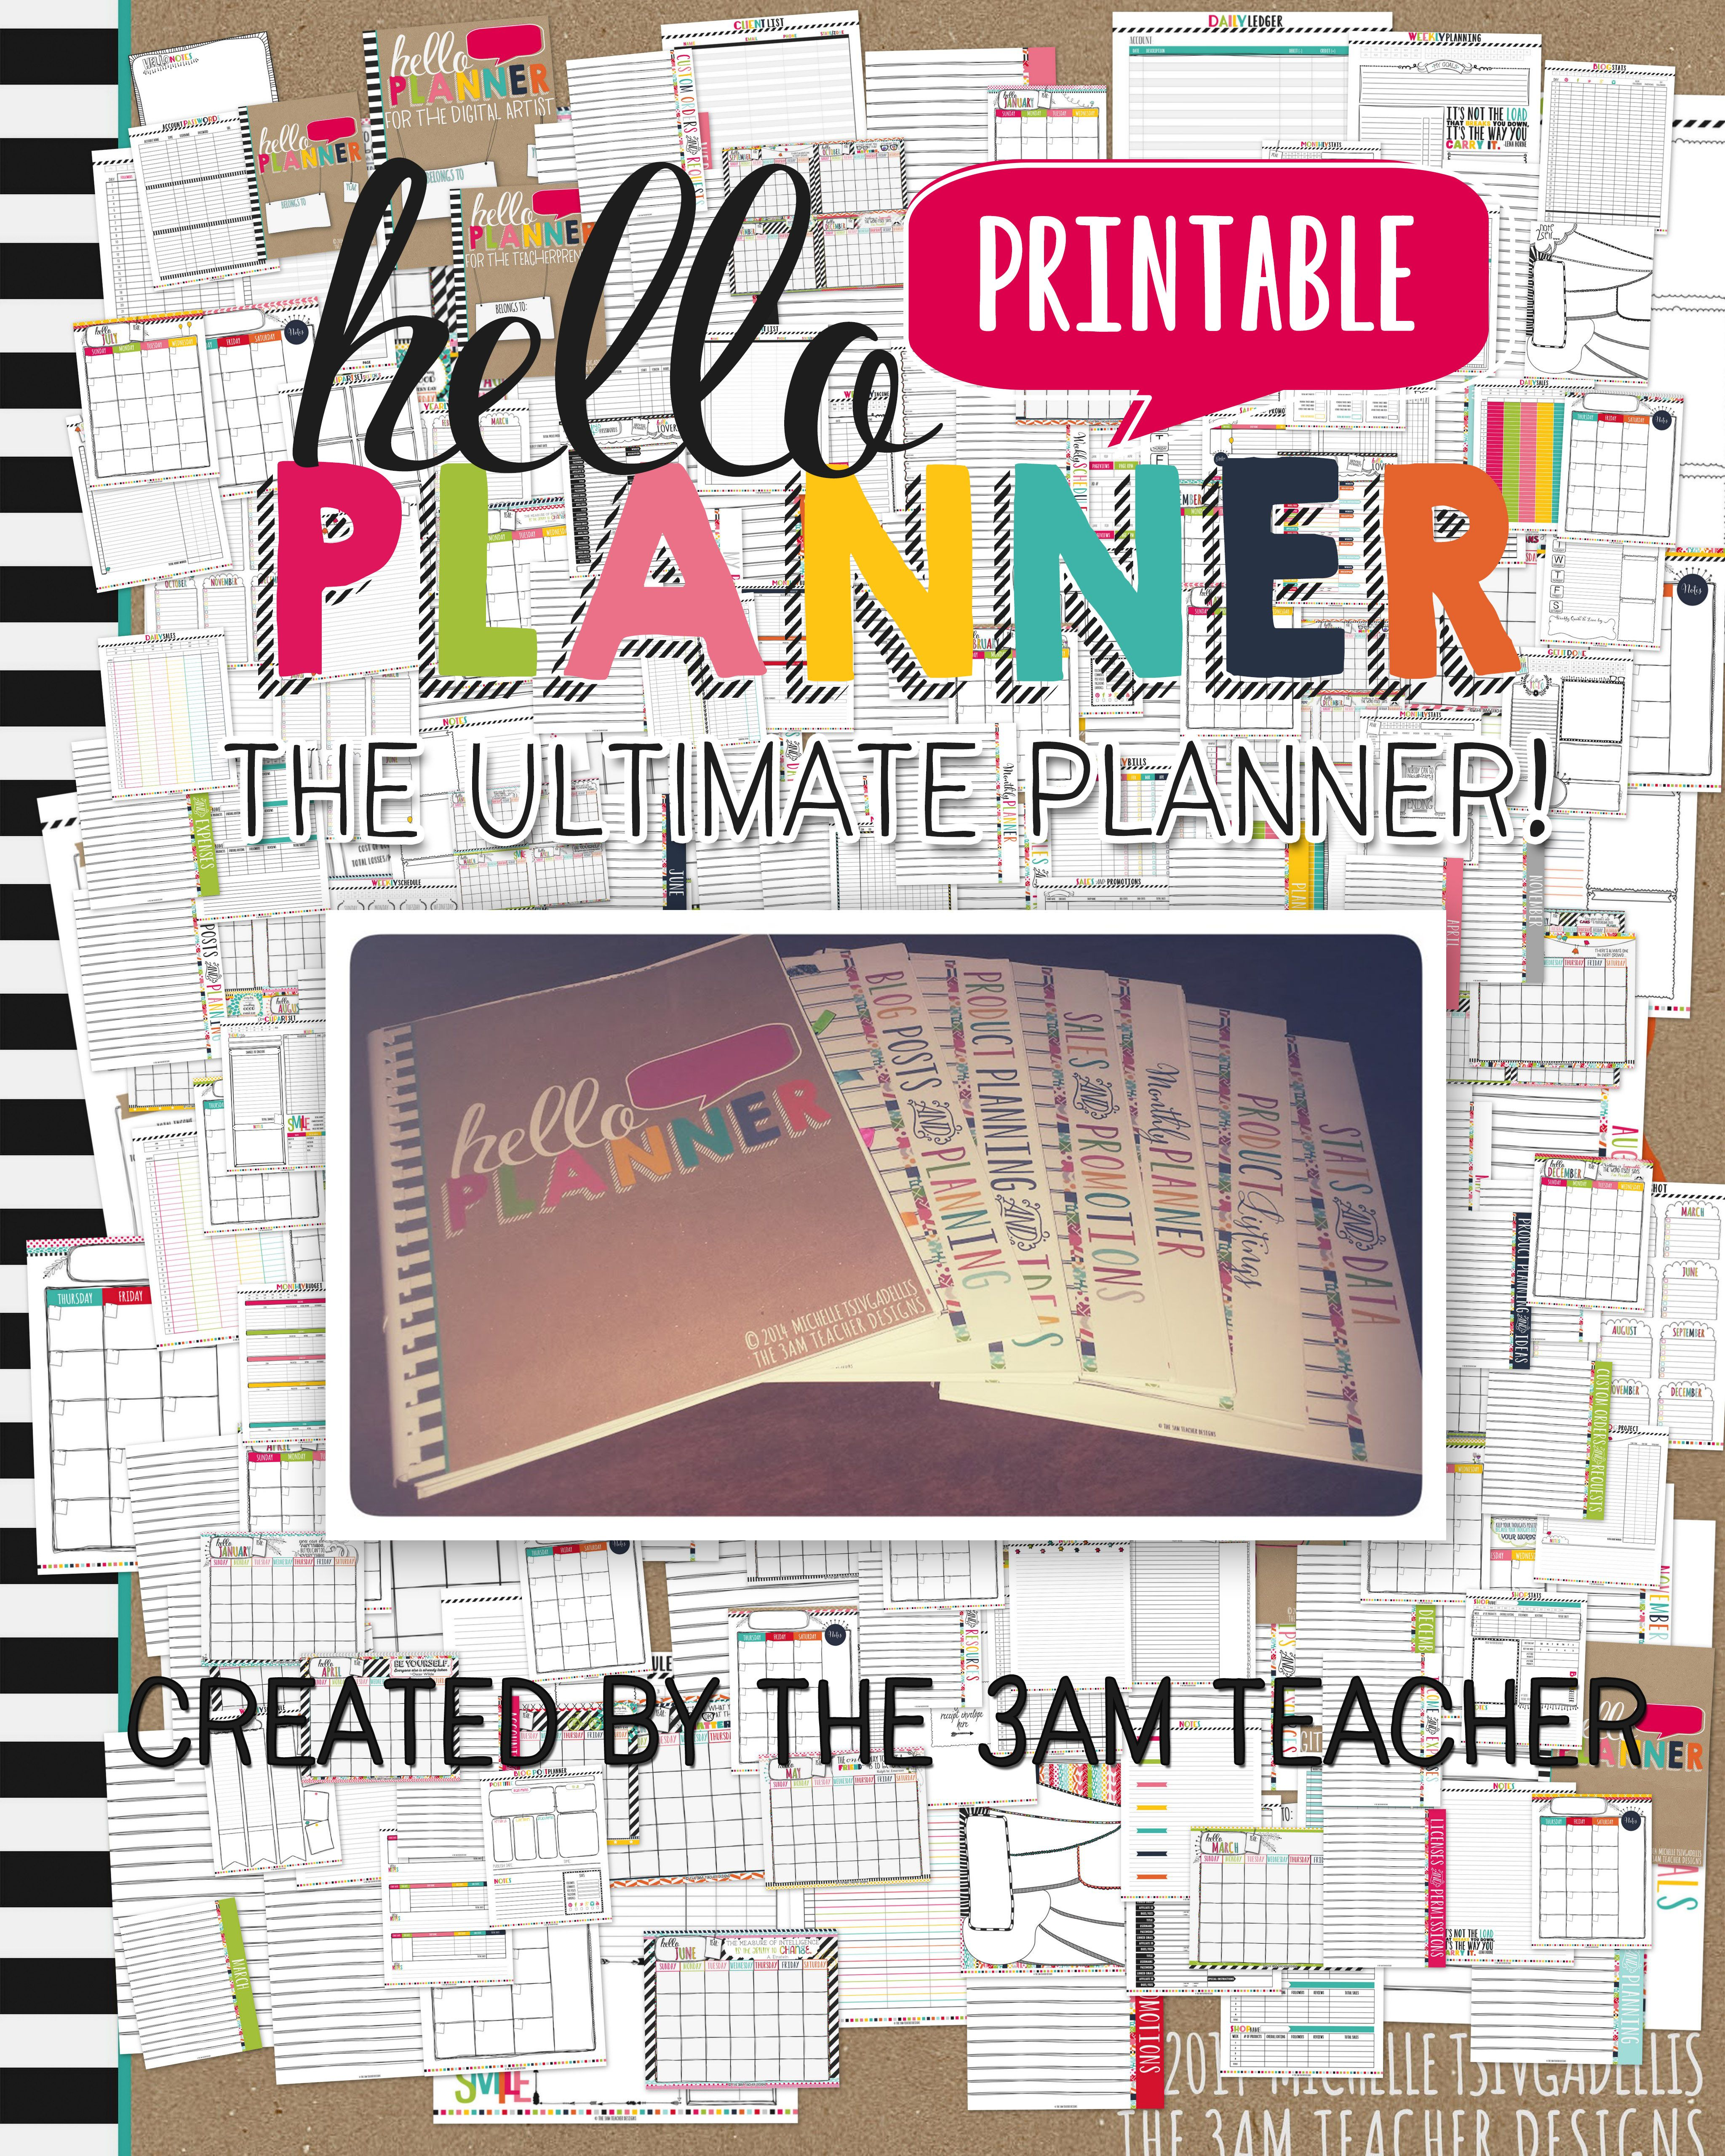 H-E-L-L-O Planner!! The ultimate business planner for those selling digital products online. Over 200 pages with a unique illustrated design by The 3AM Teacher!! 50% off for a limited time!!